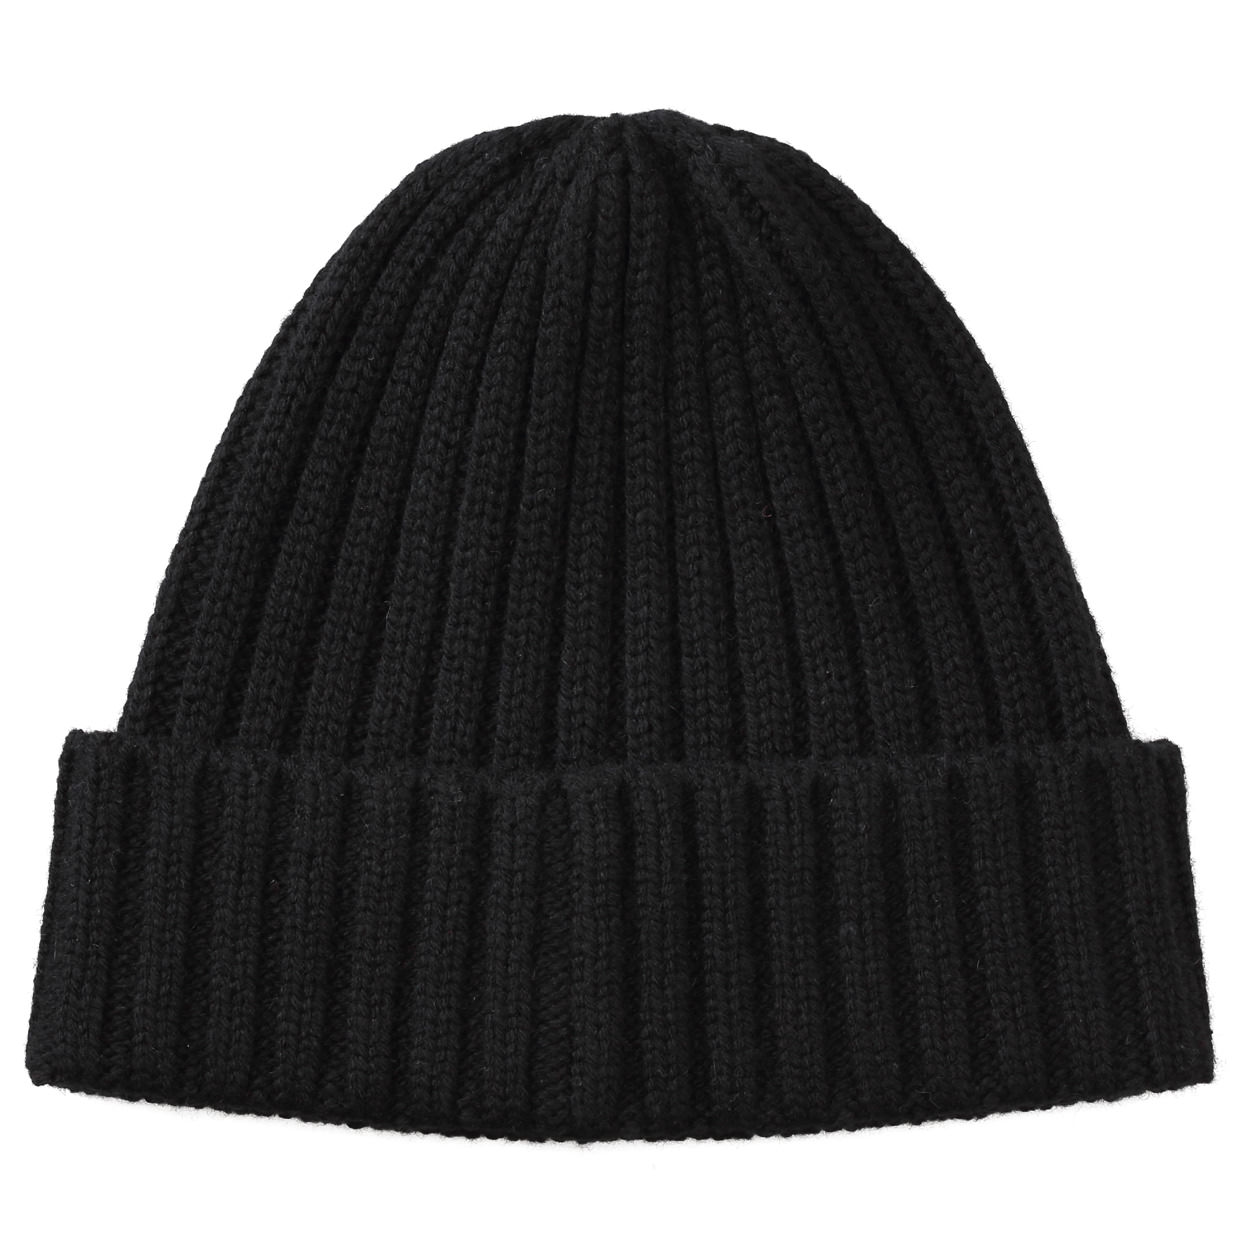 Non-Itchy On Forehead Wool Mix Rib Beanie  44d92439292